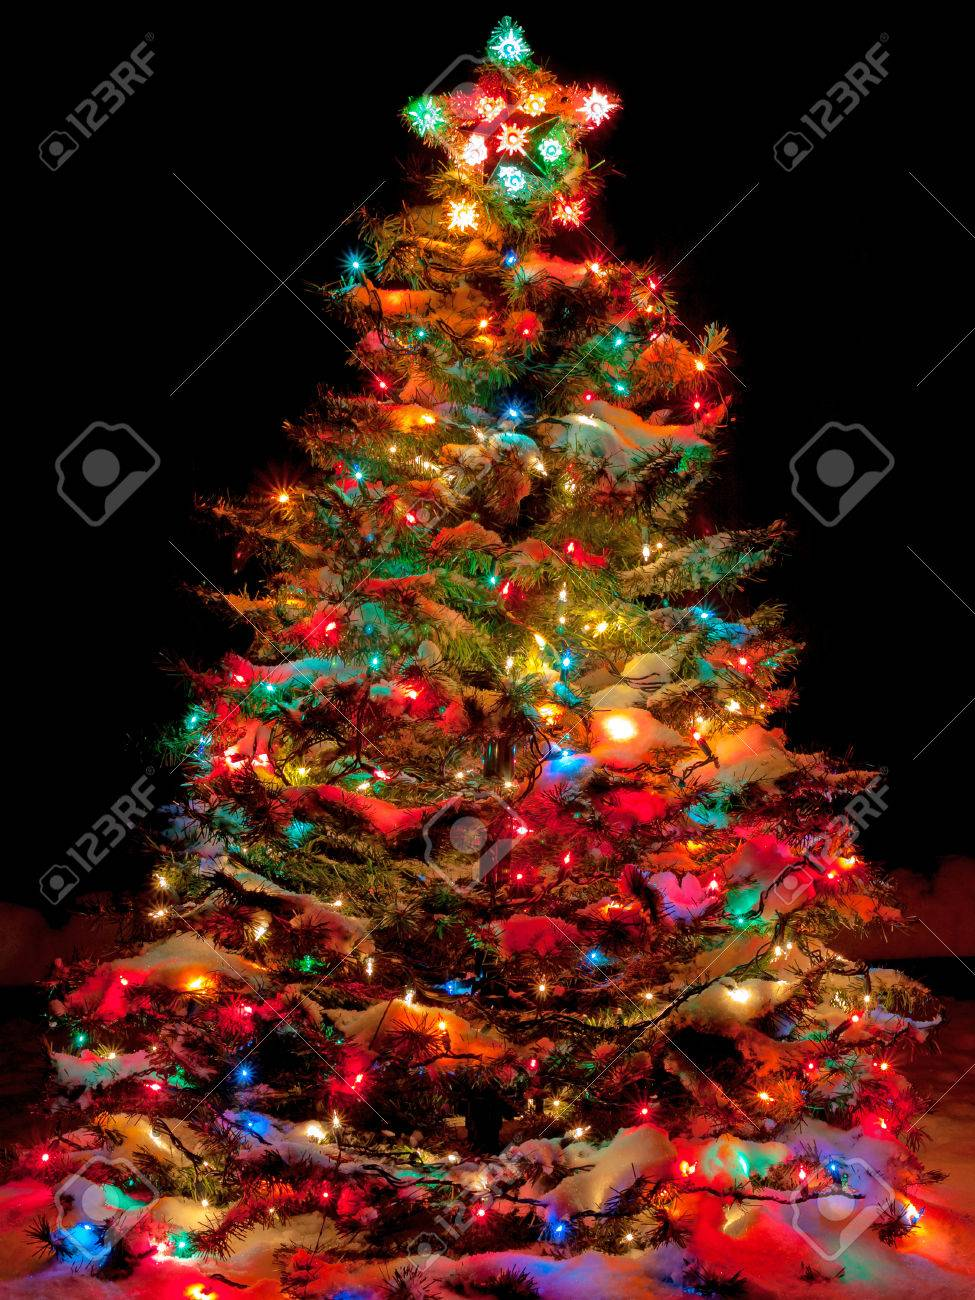 Colorful Christmas Tree Images.Snow Covered Christmas Tree With Multi Colored Lights At Night